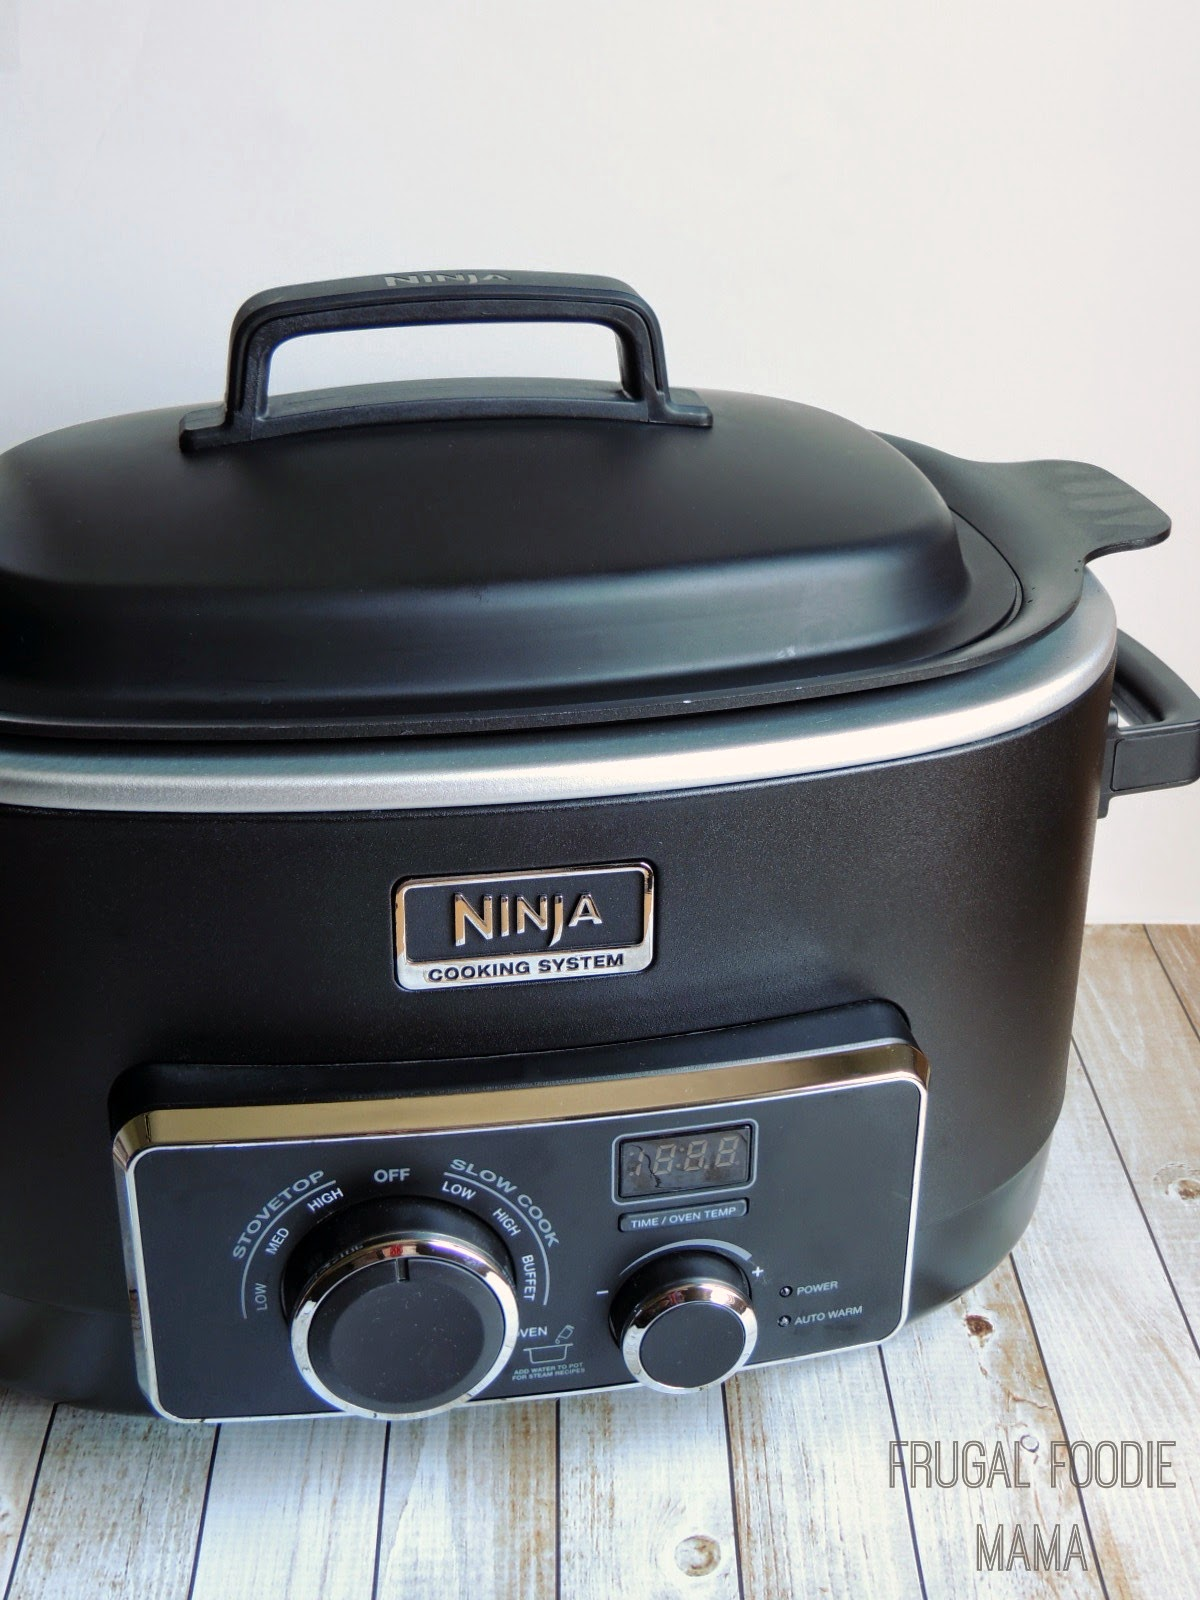 Ninja 3-in-1 Cooking System Review via thefrugalfoodiemama.com